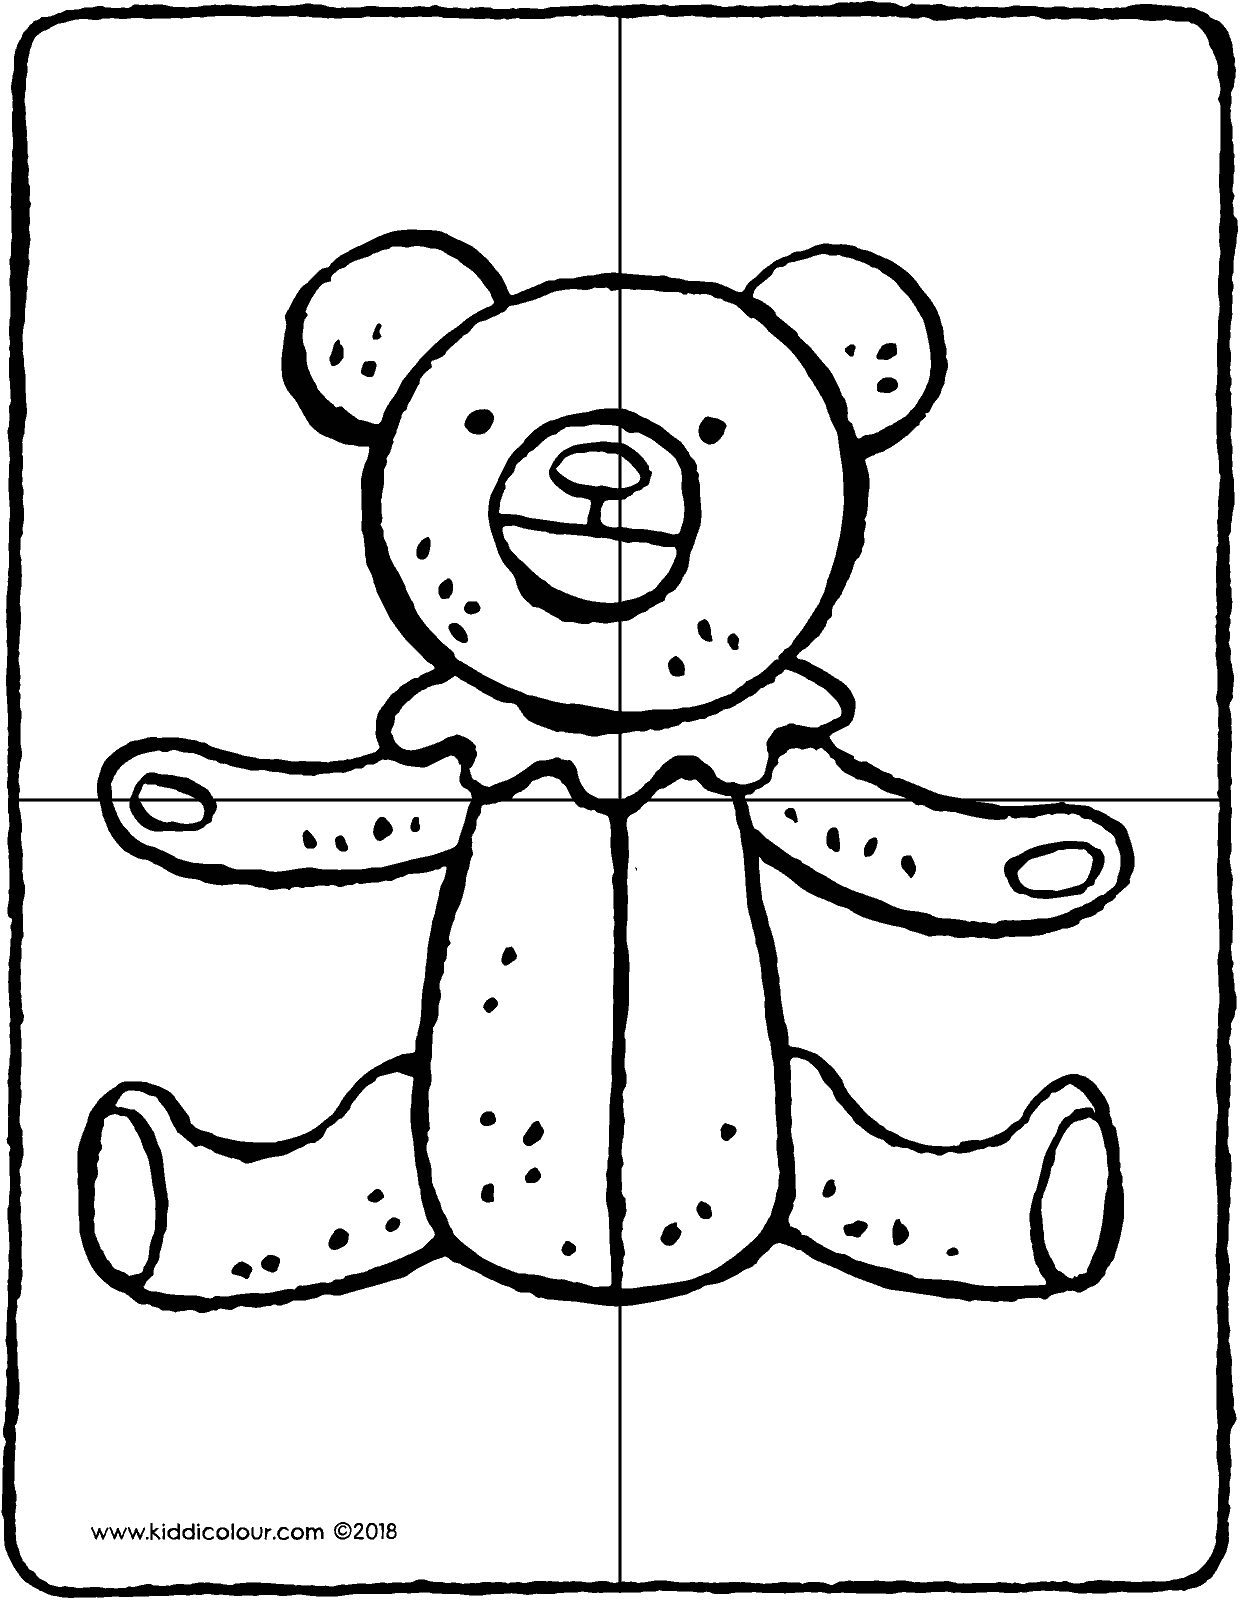 1240x1600 Make A Teddy Bear Puzzle